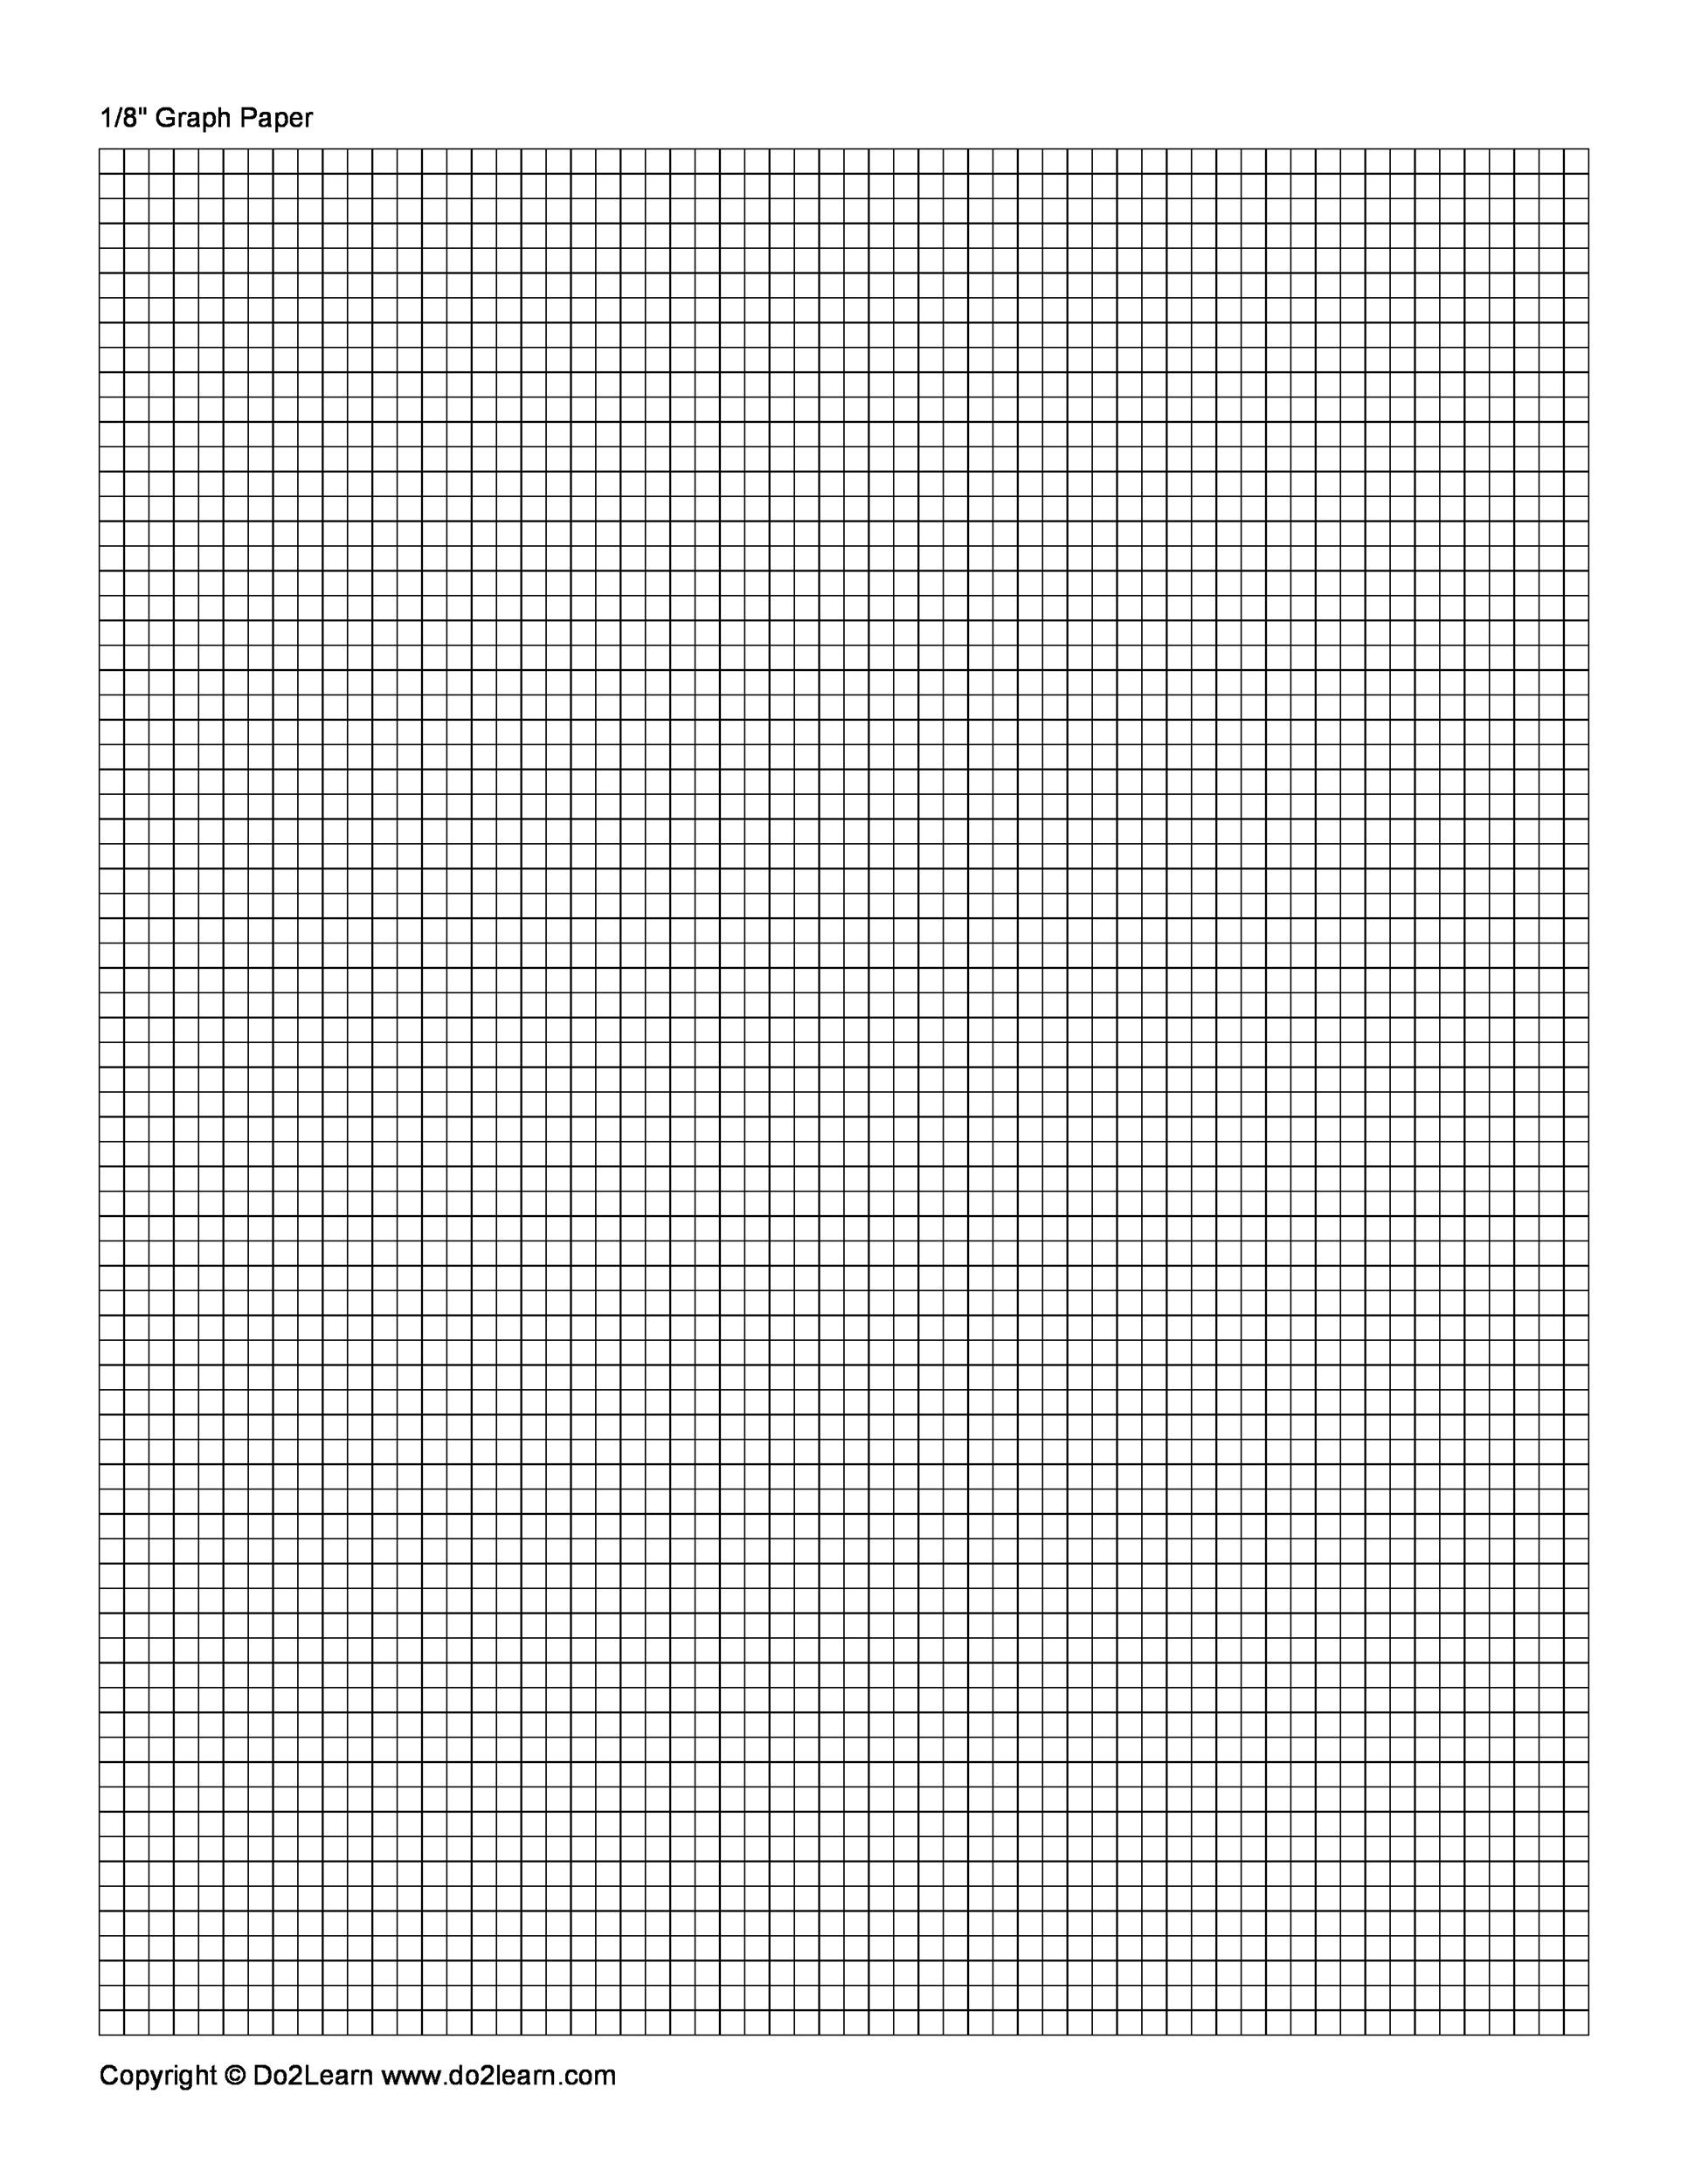 Perfect Printable Graph Paper Template 01 And Download Graph Paper For Word